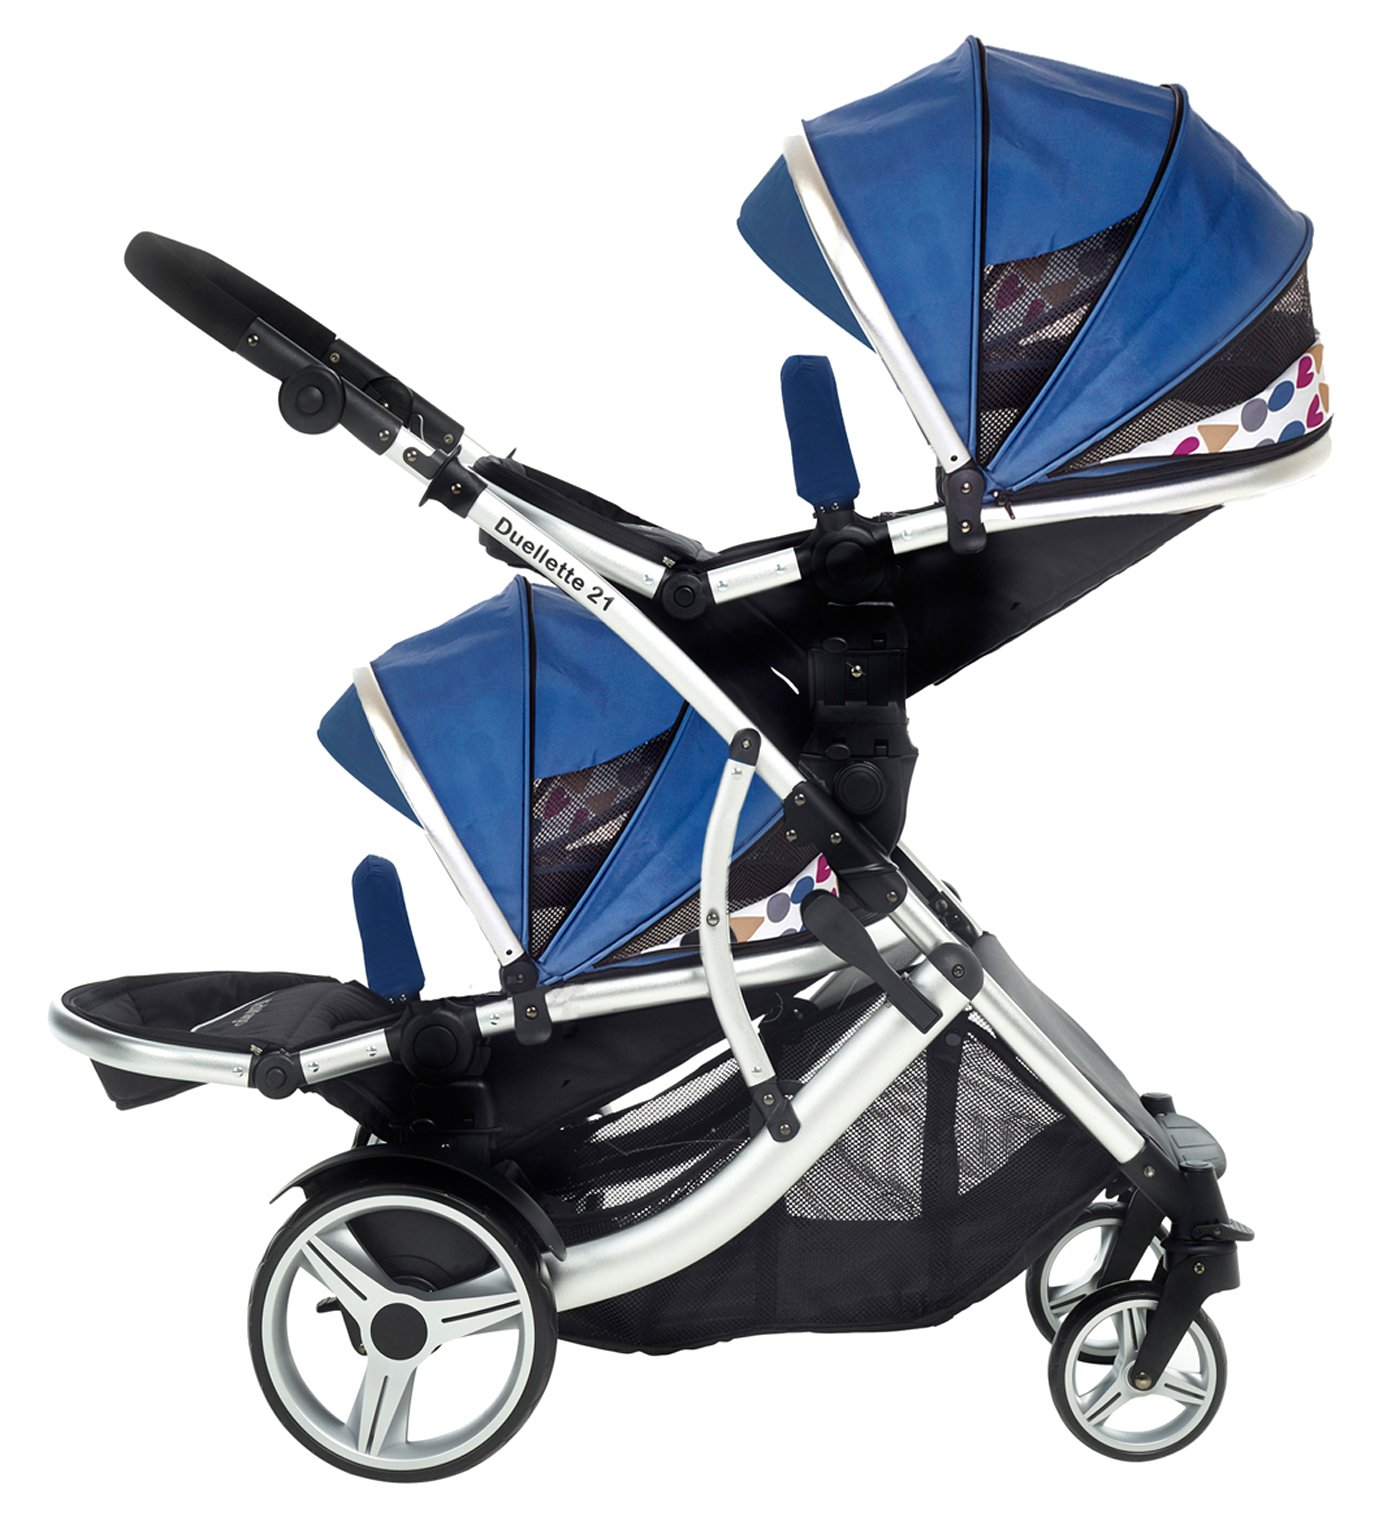 Kids Kargo Duellette 21 BS Travel System Pram Double Pushchair (Blue) Kids Kargo Suitability Newborn Twins (if used with car seats) or Newborn/toddler. Various seat positions. Both seats can face mum (ideal for twins) Accommodates 1 or 2 car seats and compatible with Kids Kargo safety pod car seat. Adapters available for use with maxi cosi 1